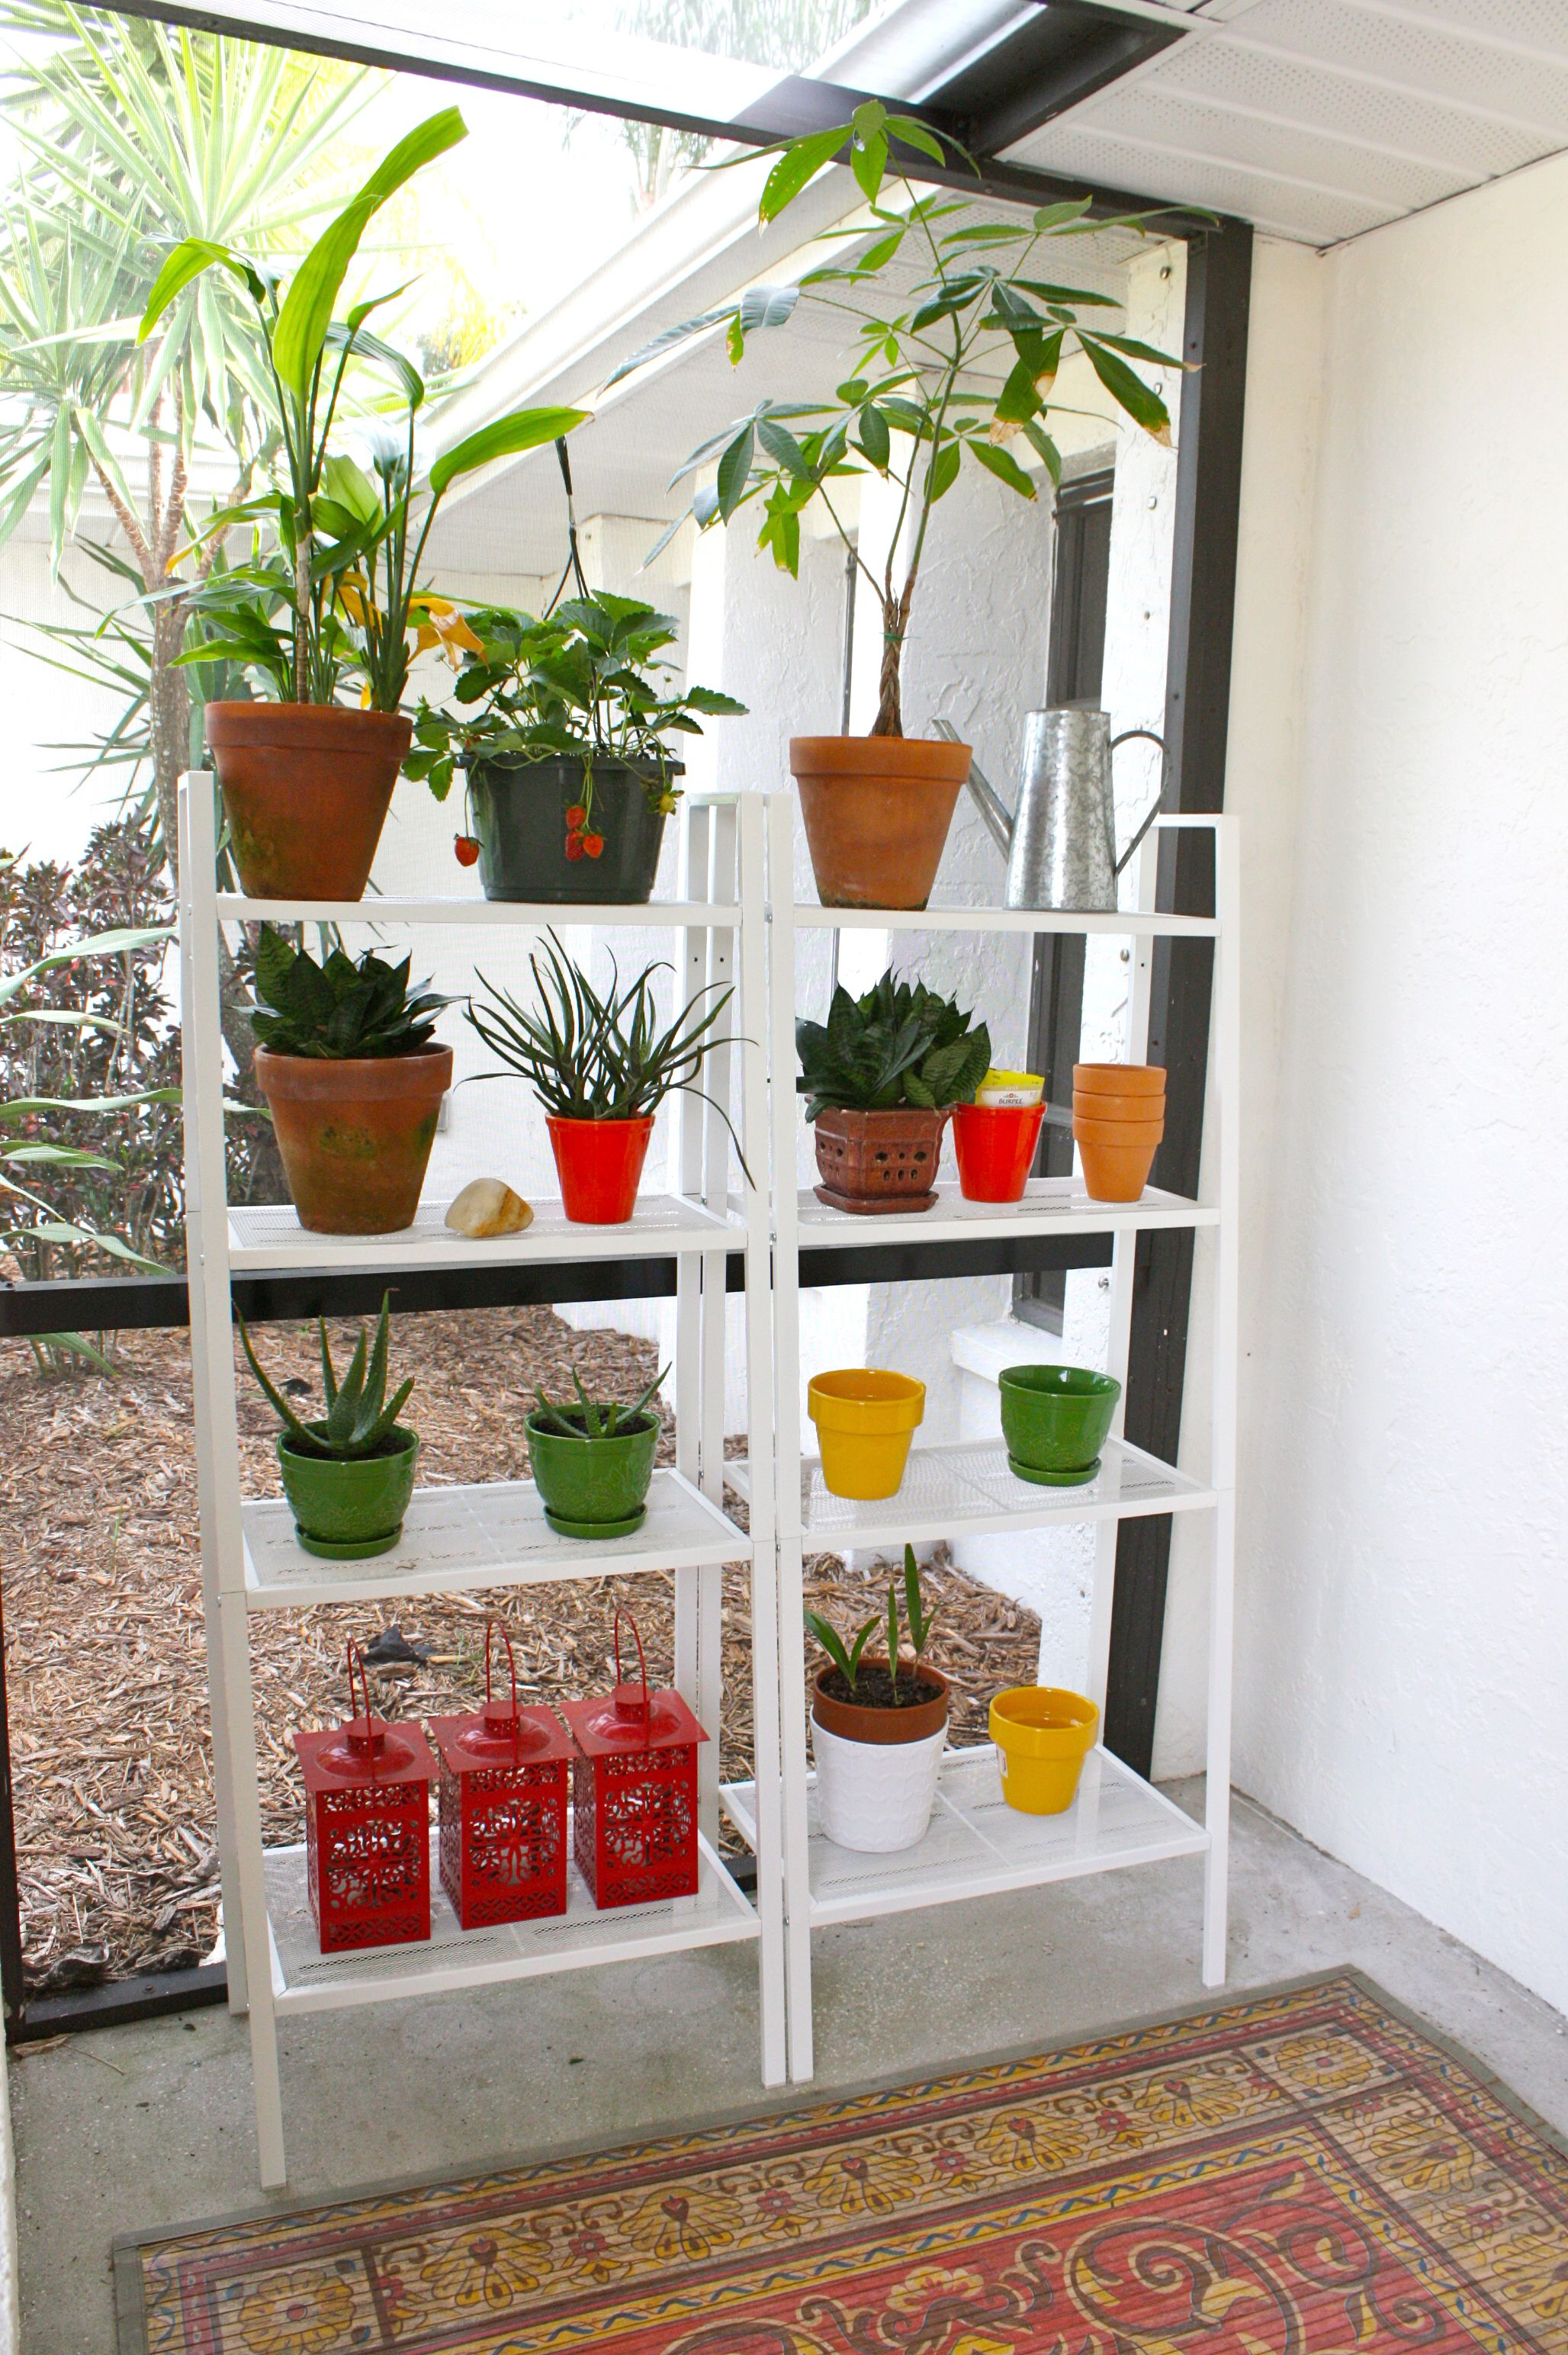 Outdoor ikea lerberg shelves interieur inspiratie for Ikea plantes